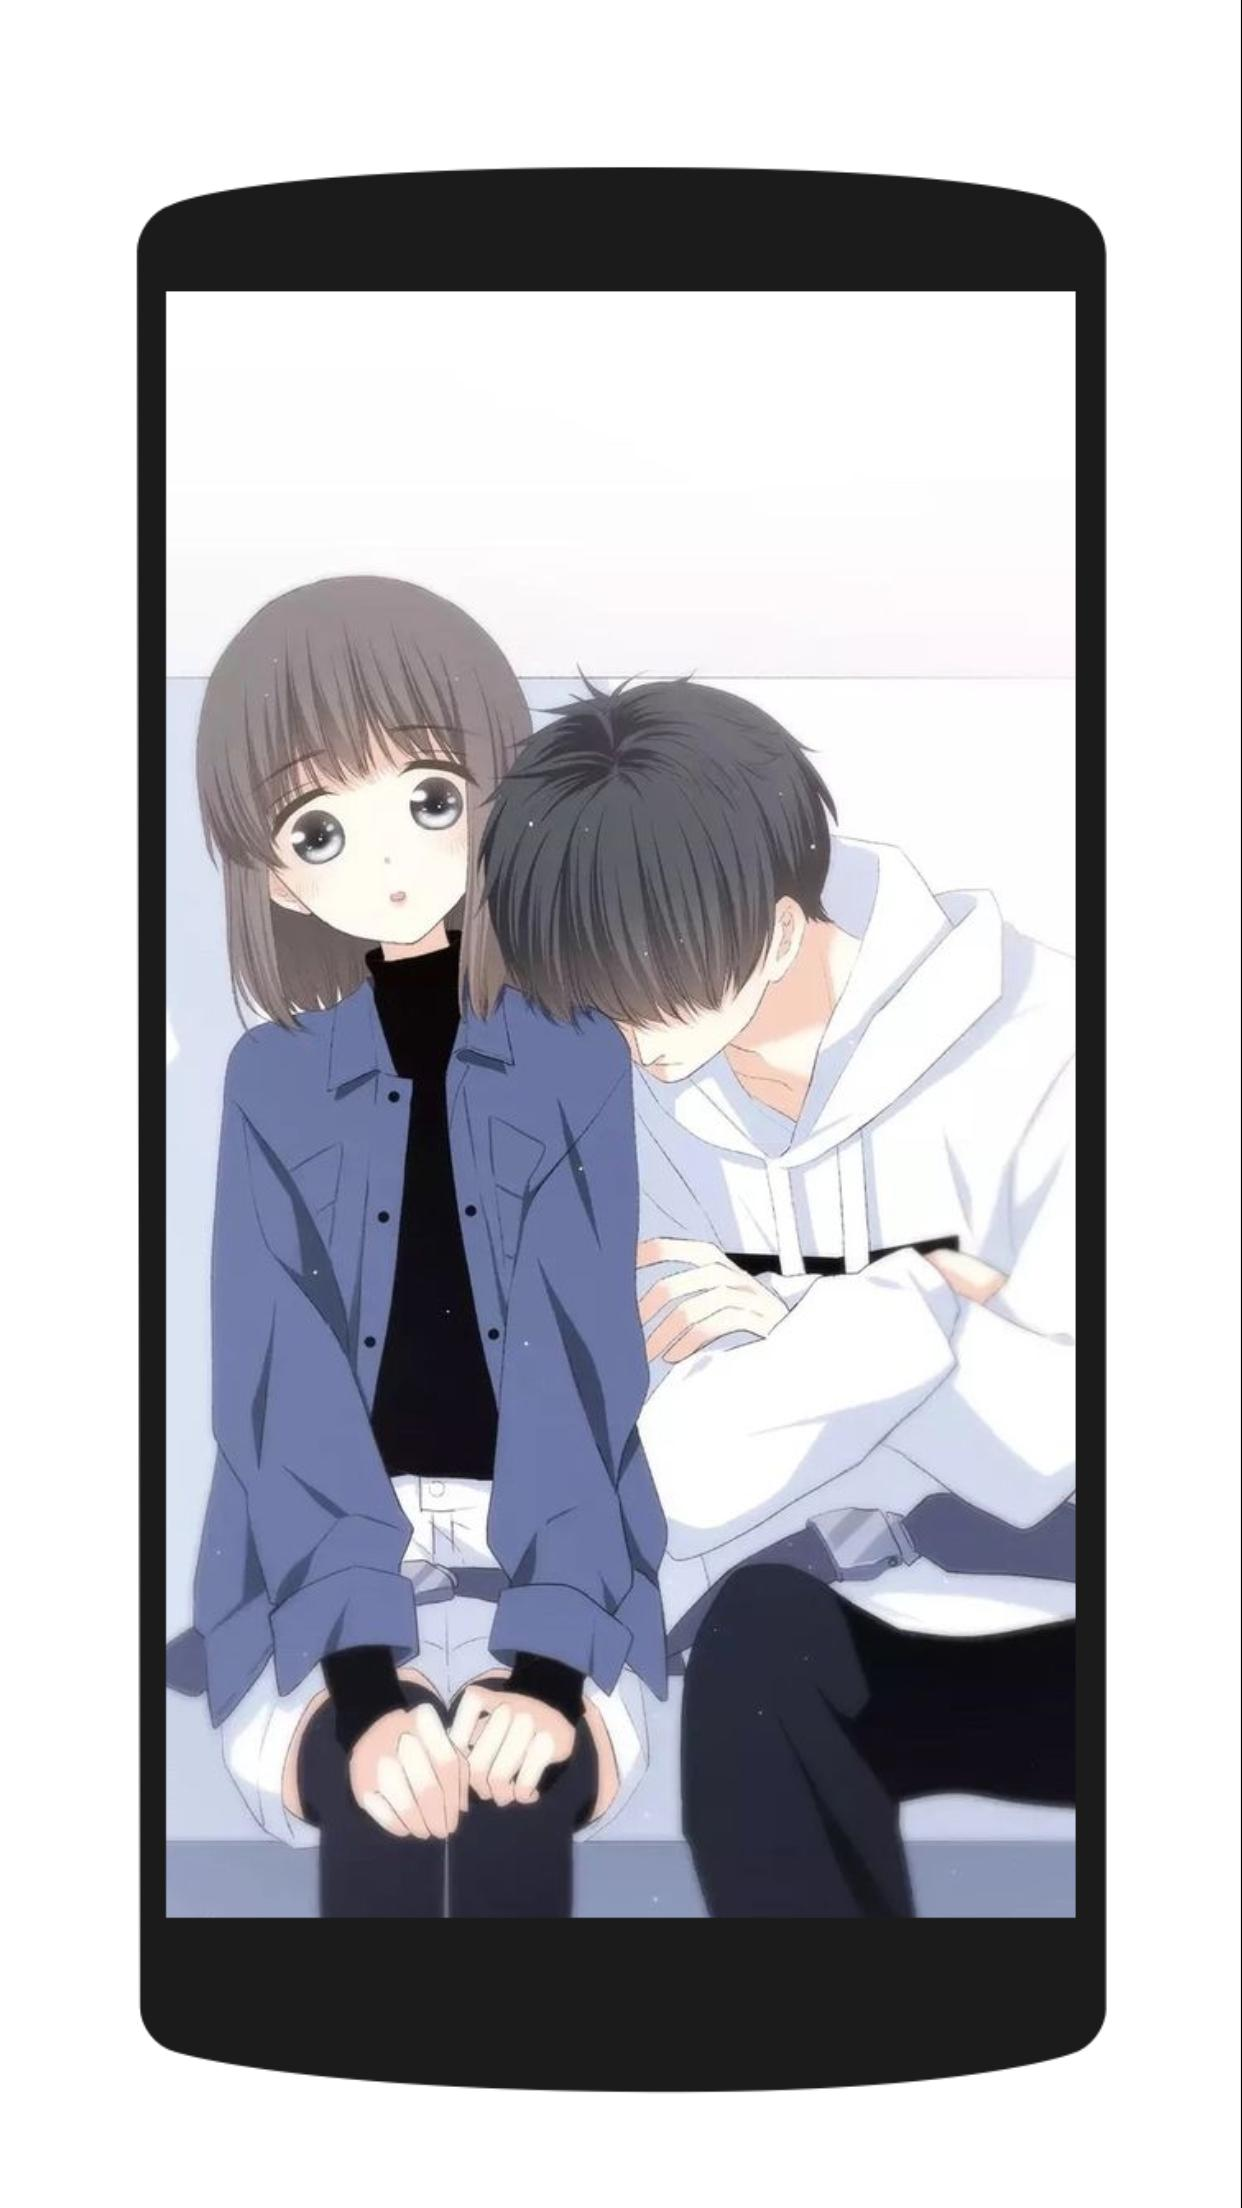 Anime Couple Wallpaper Offline For Android Apk Download Anime couple wallpaper offline